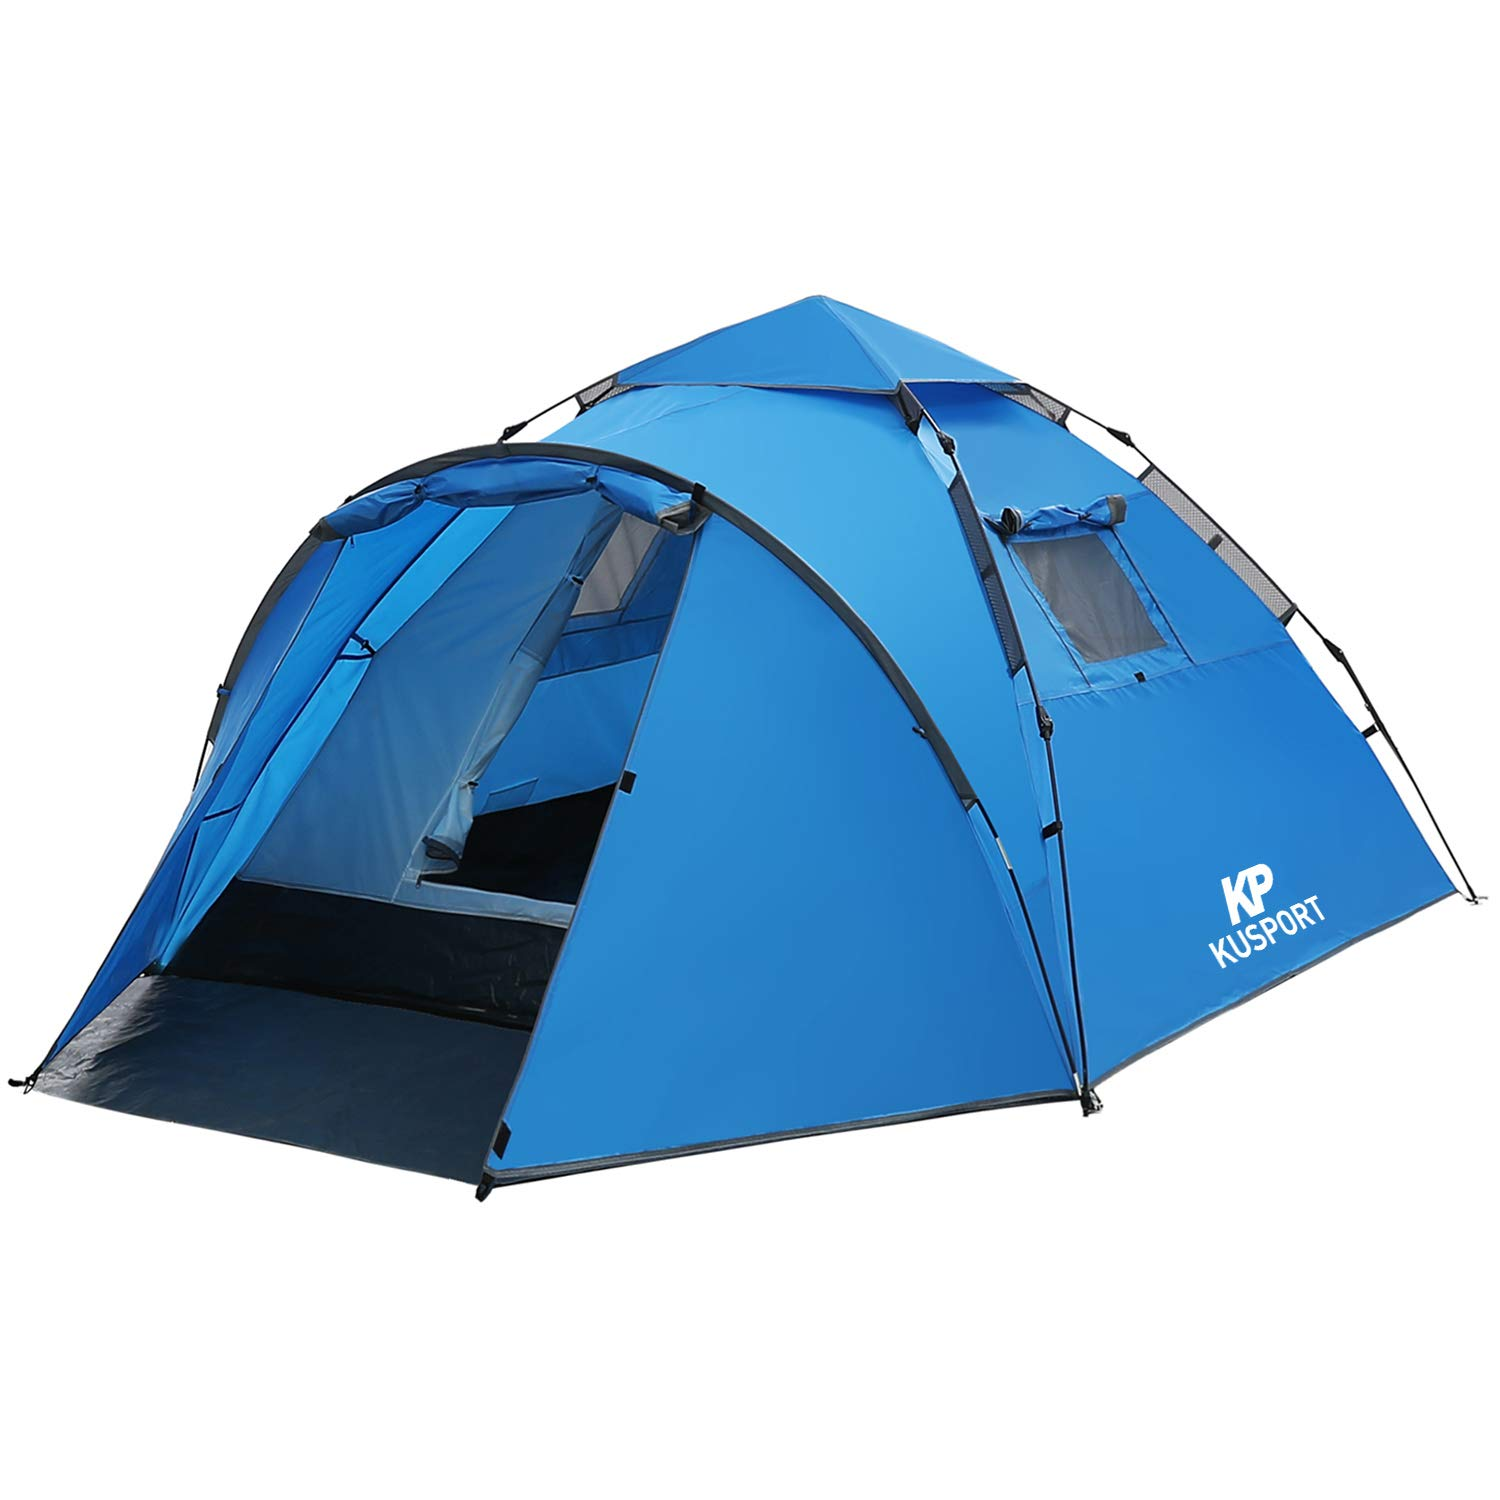 Kusport ZP05, 2-3 Person Rainproof Automatic Hydraulic Backpack Tent for Camping Outdoor Beach Hiking Travel, Blue